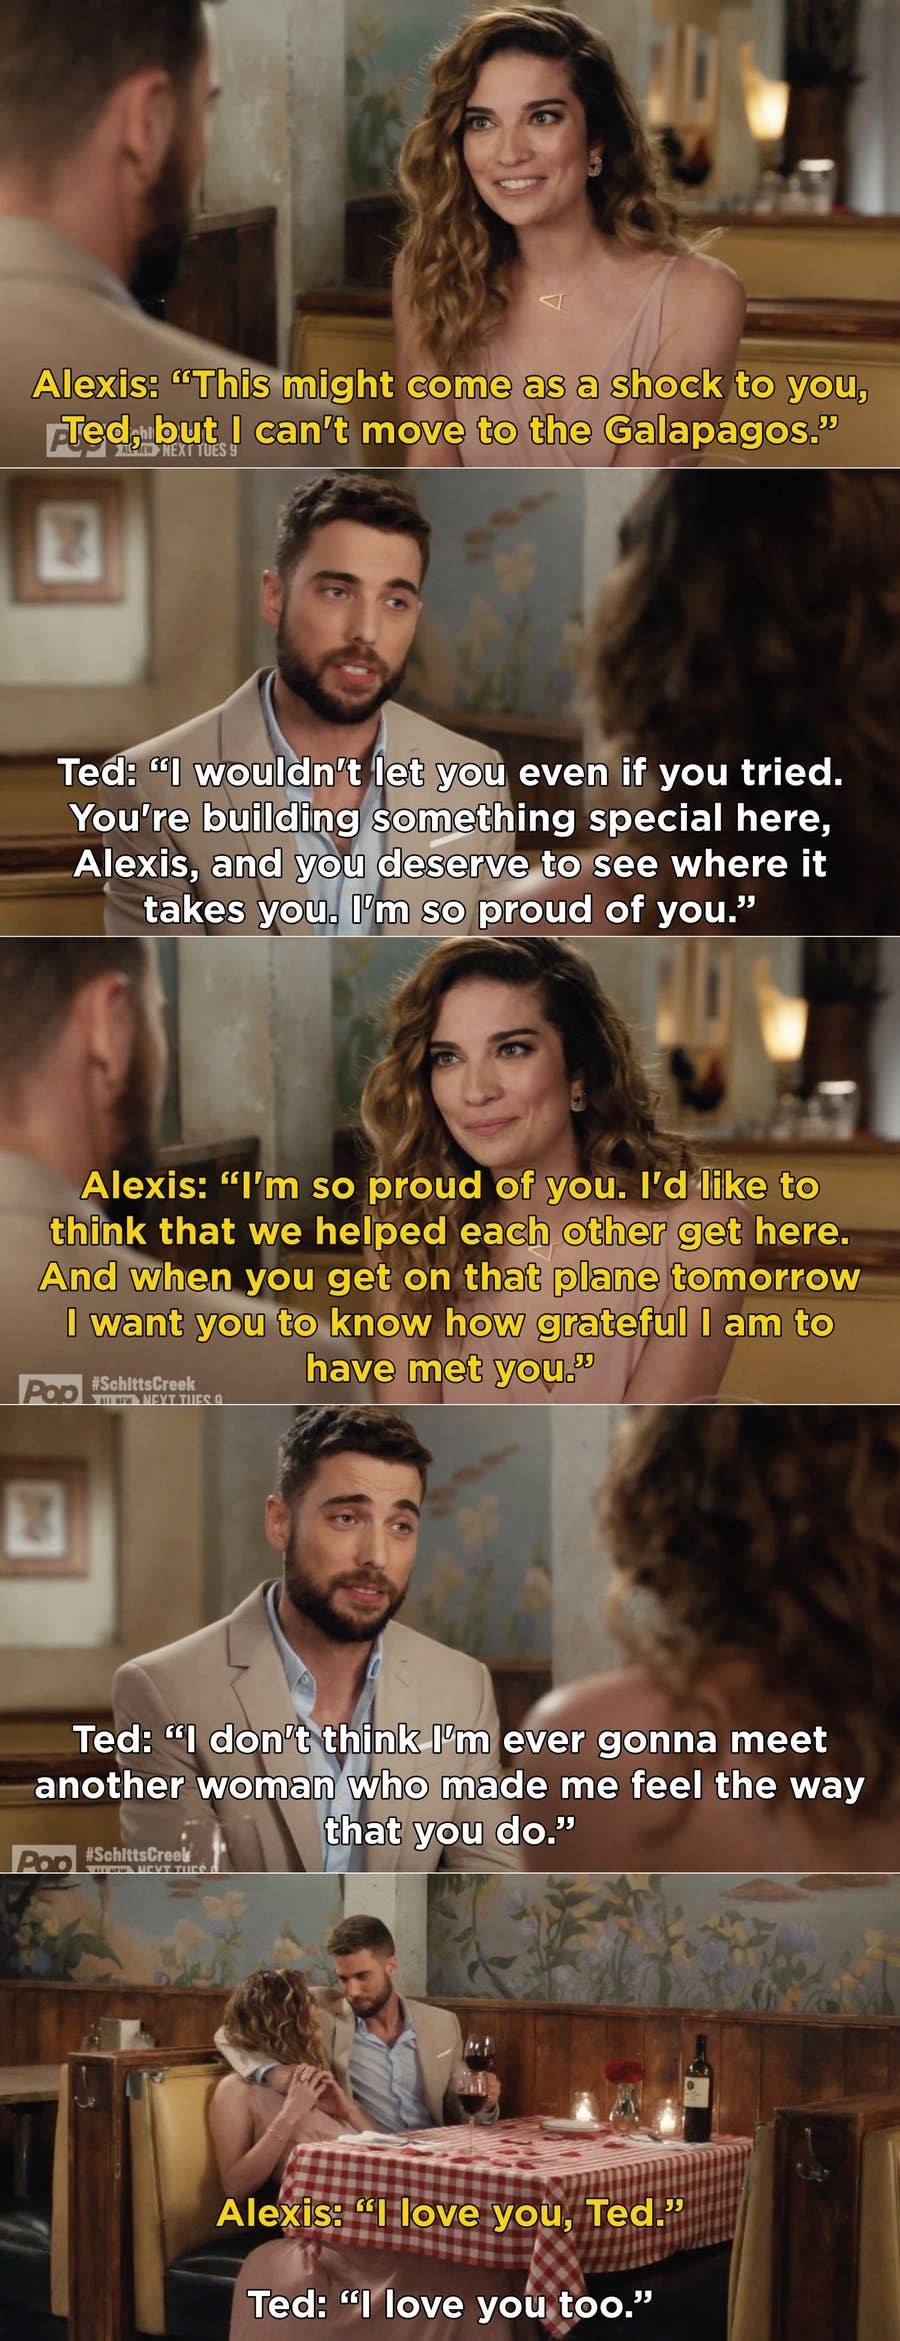 Alexis tells Ted she can't move with him, Ted says she wouldn't let her even if she tried and that he doesn't think he'll ever meet anyone who makes him feel the way she does